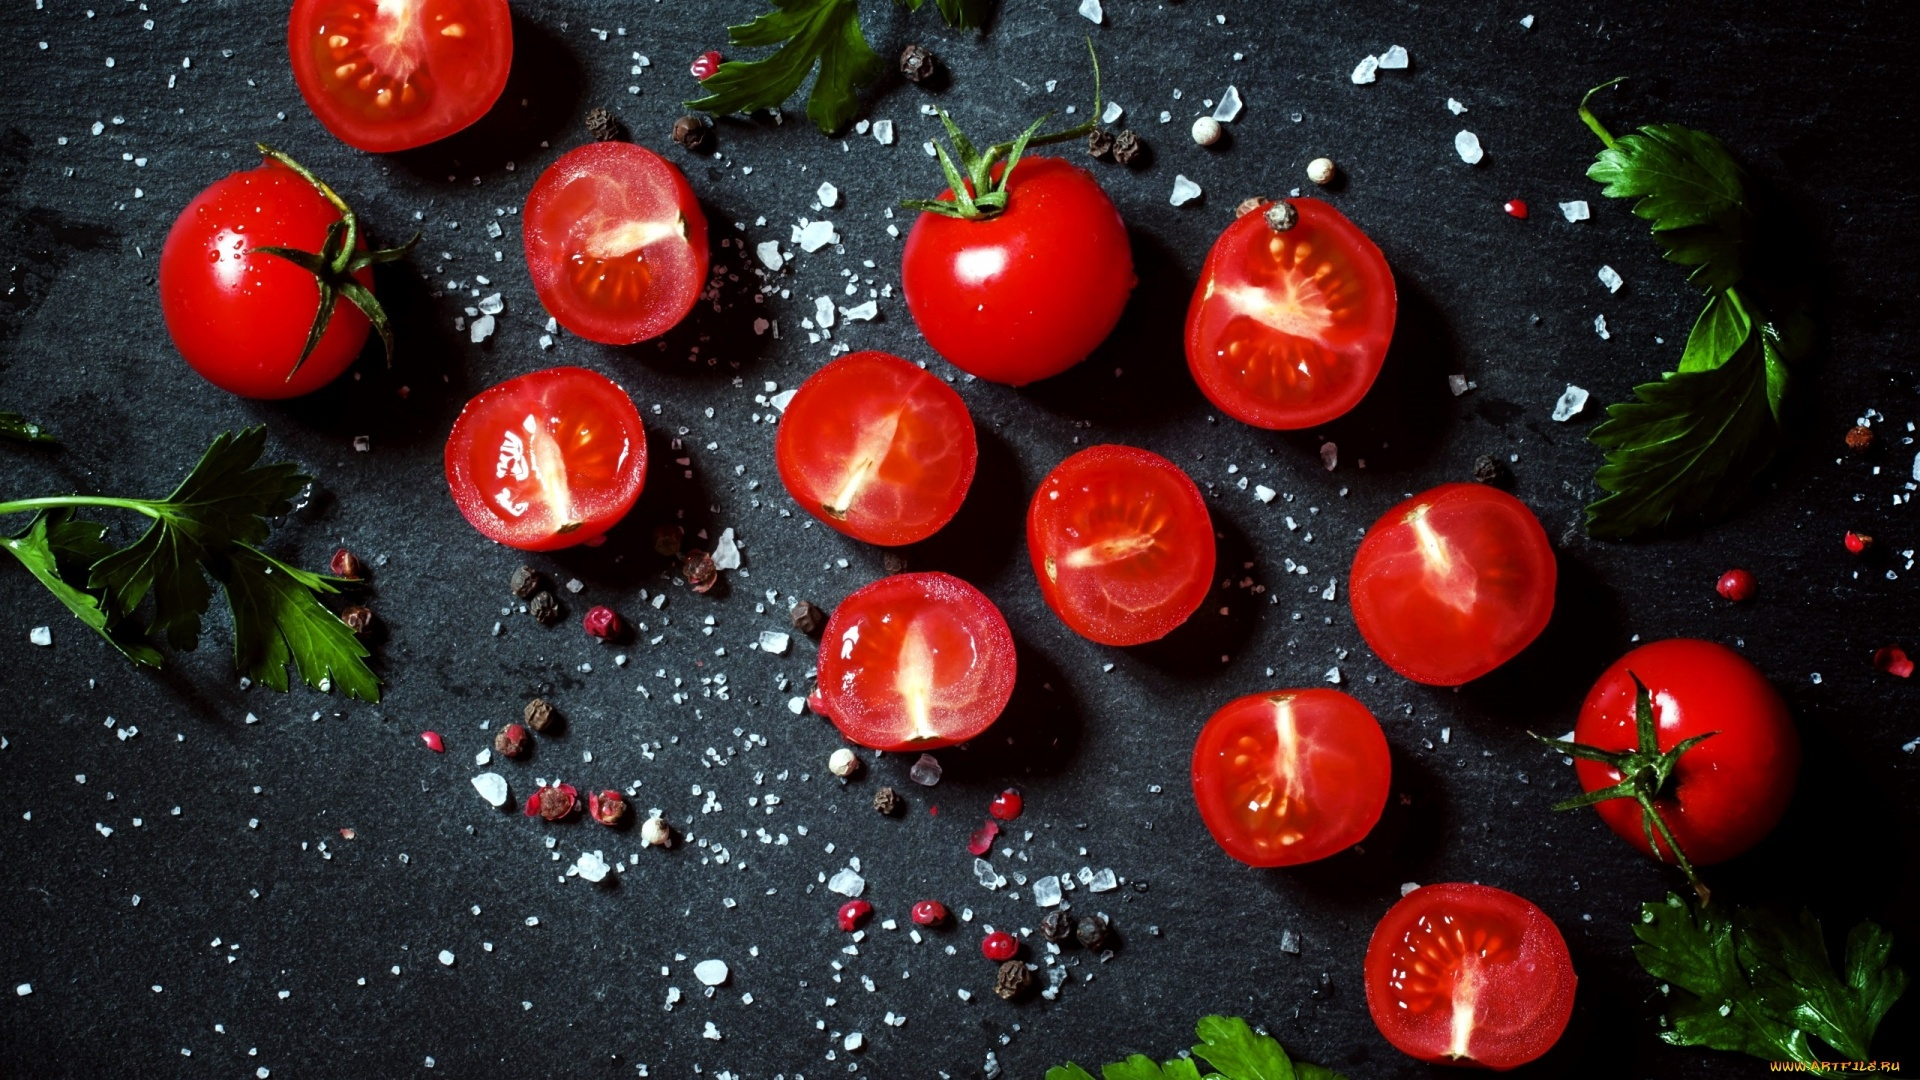 Tomatoes PC Wallpaper